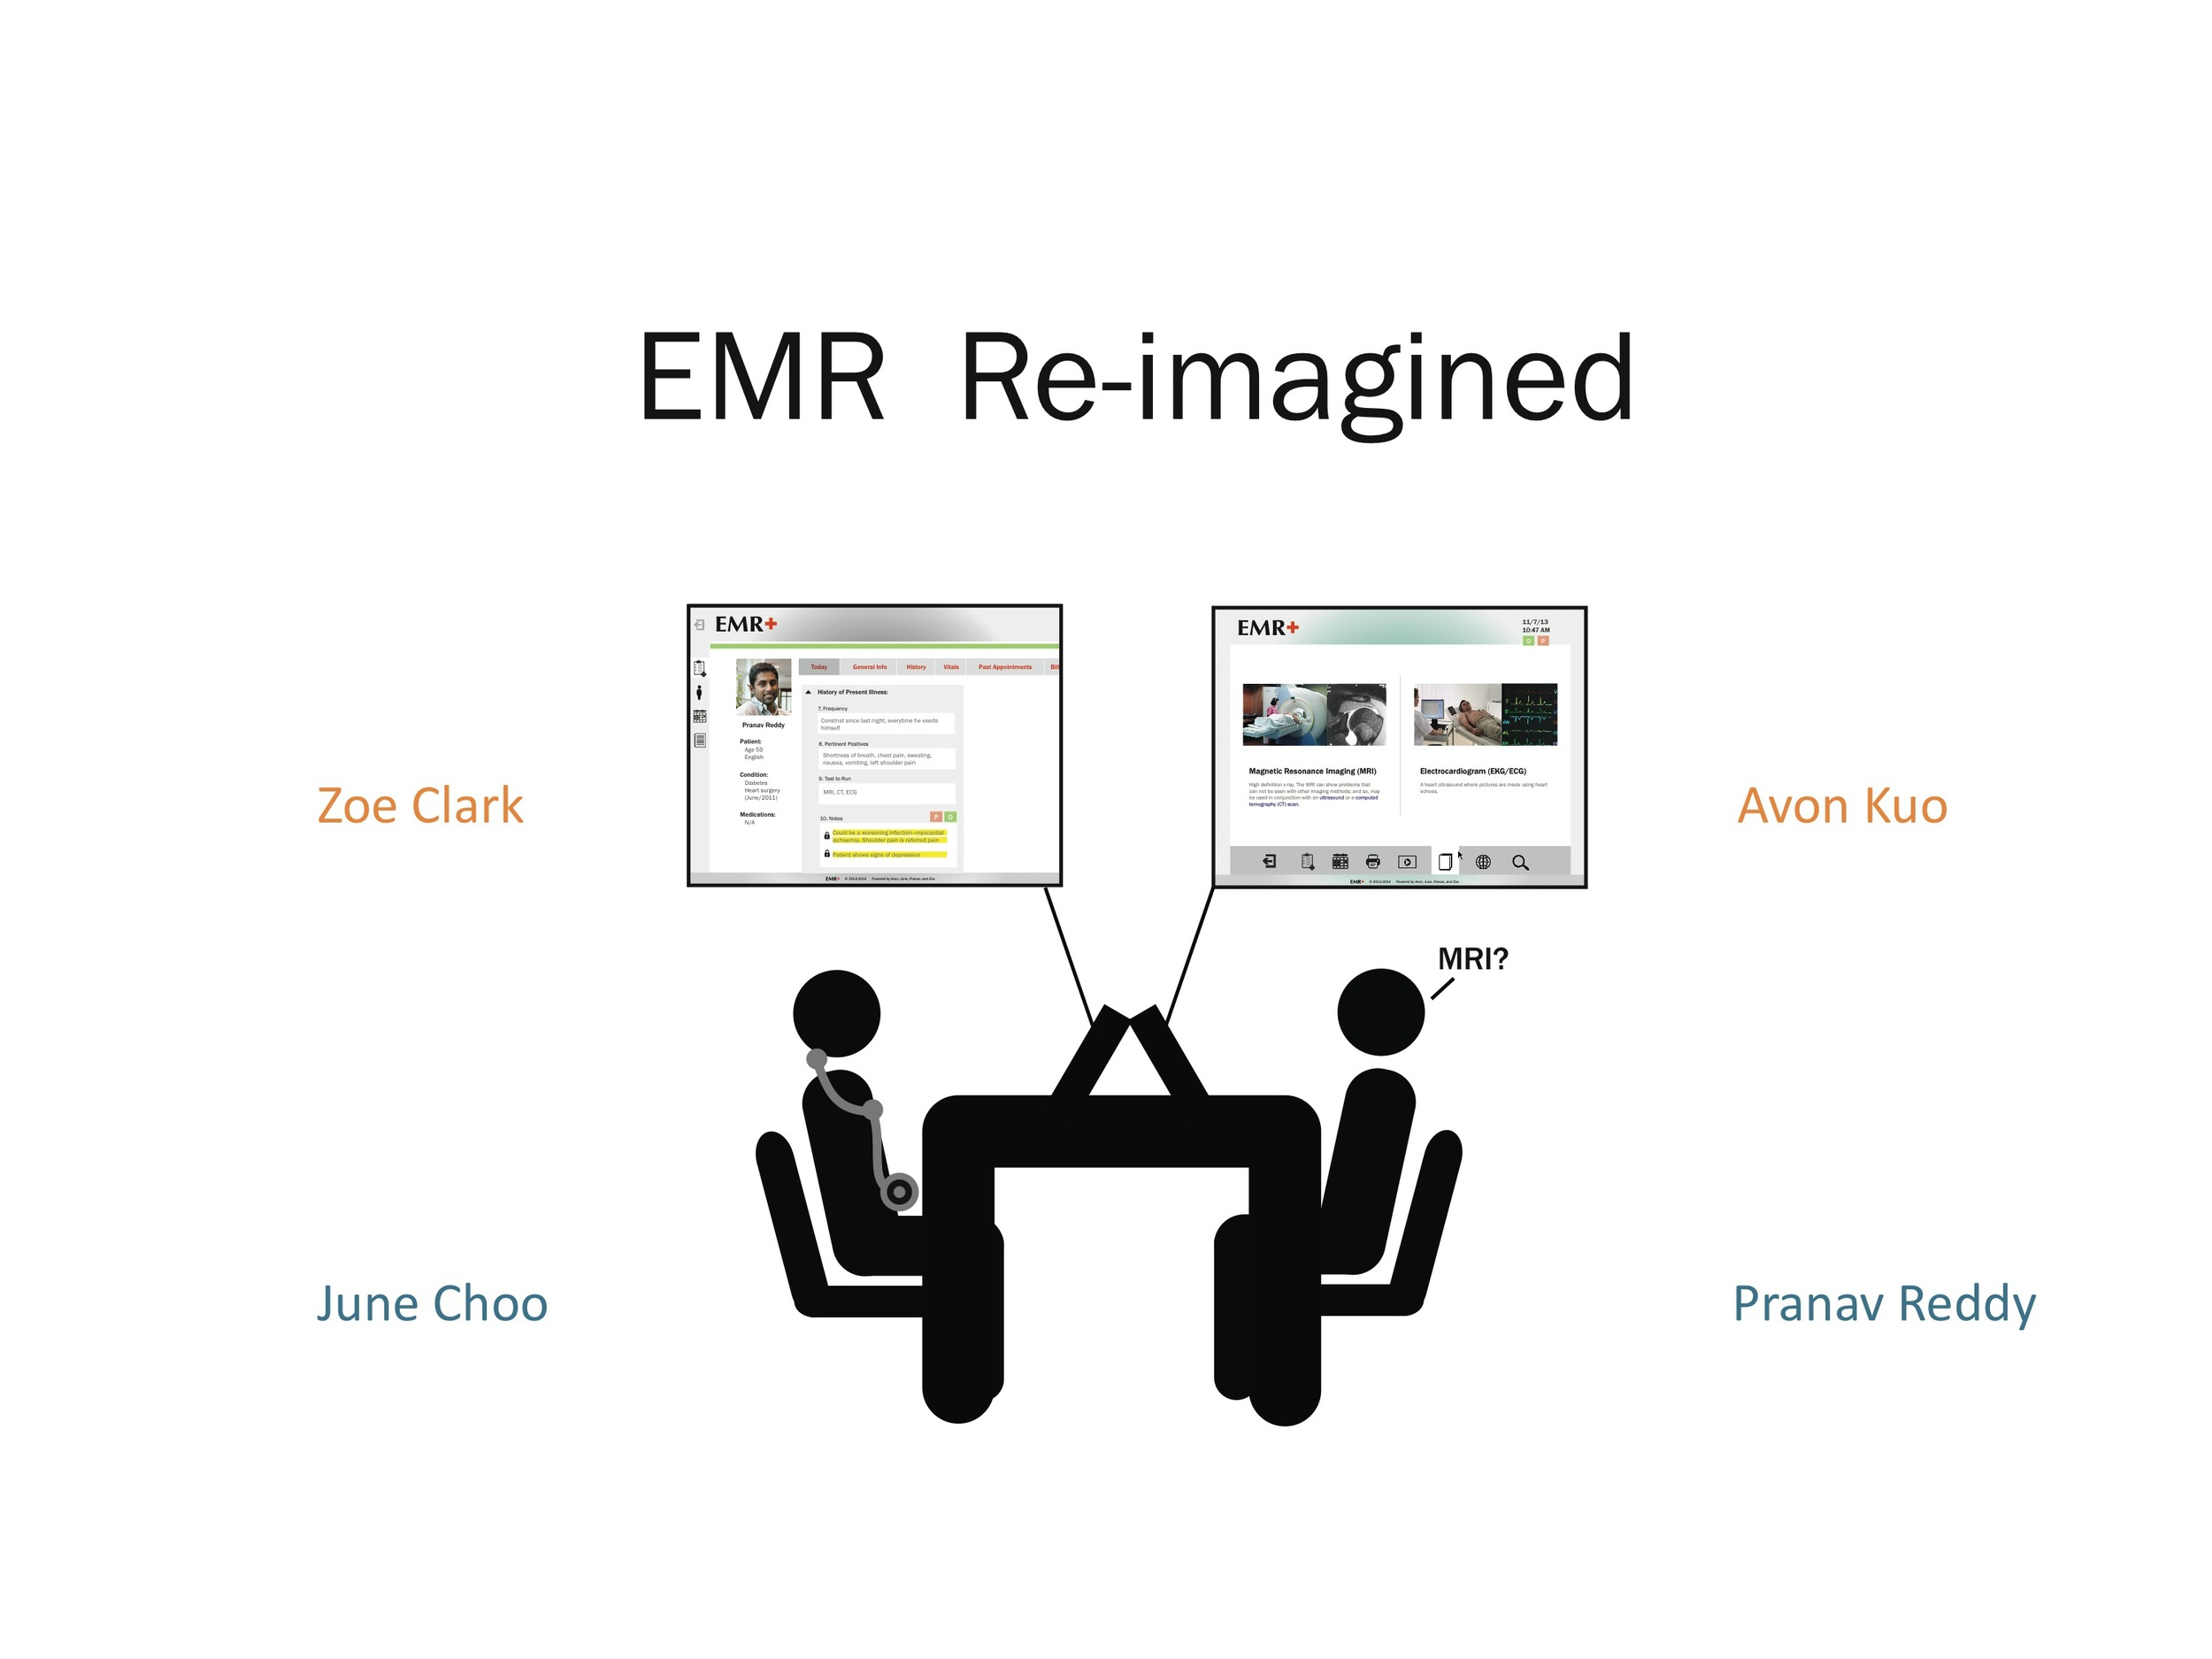 EMR Reimagined